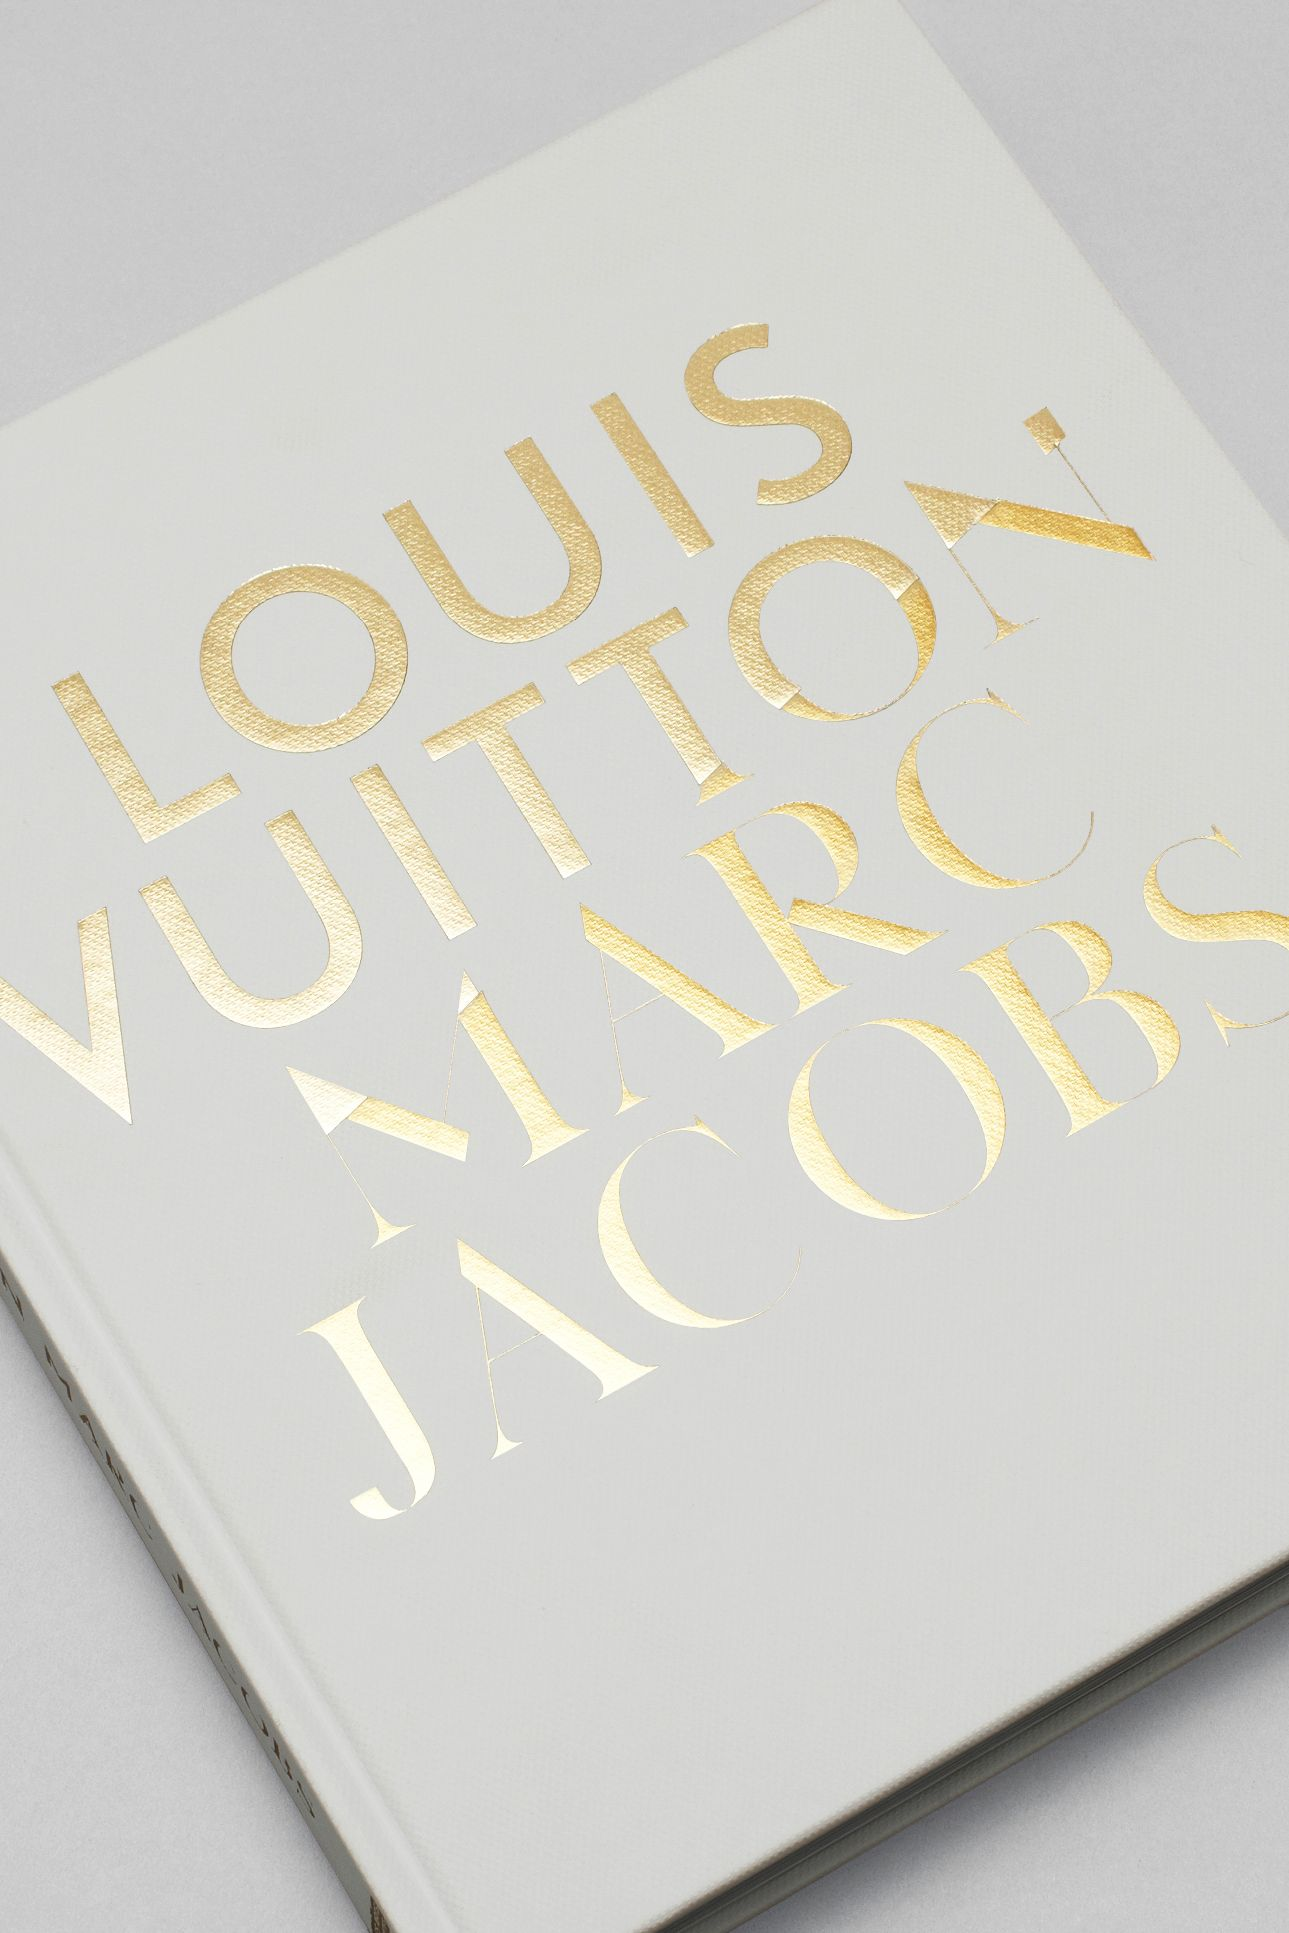 Louis Vuitton Marc Jacobs custom typography applied to cover